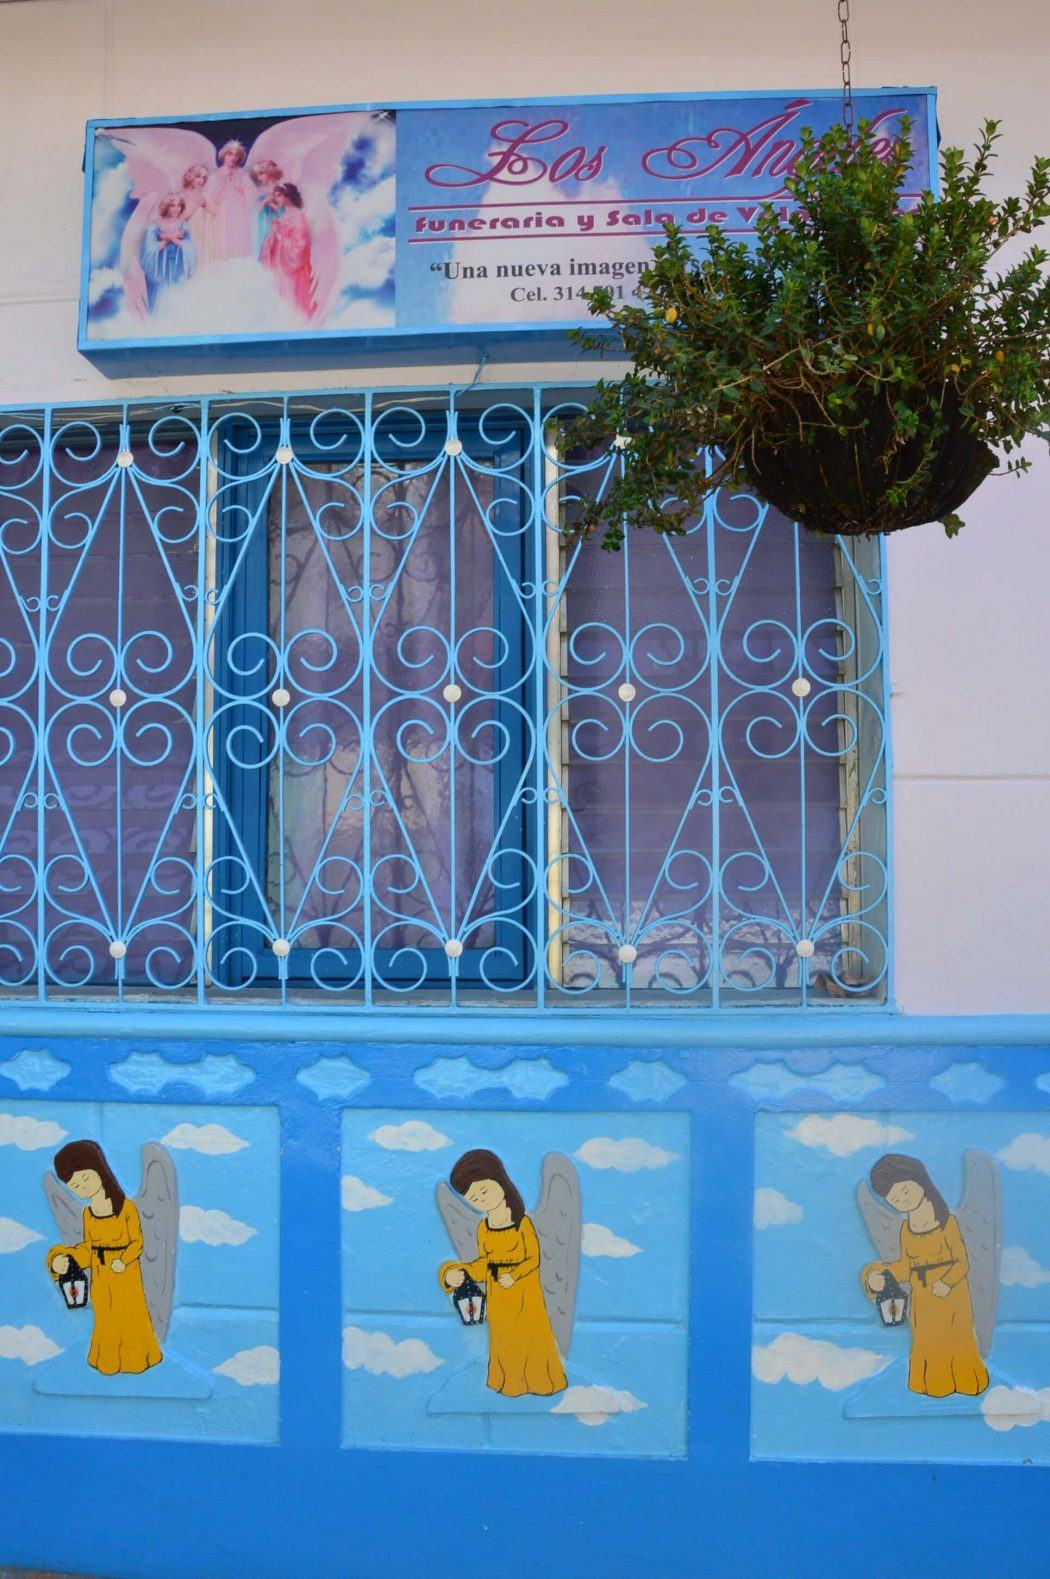 House in guatape with images of angels